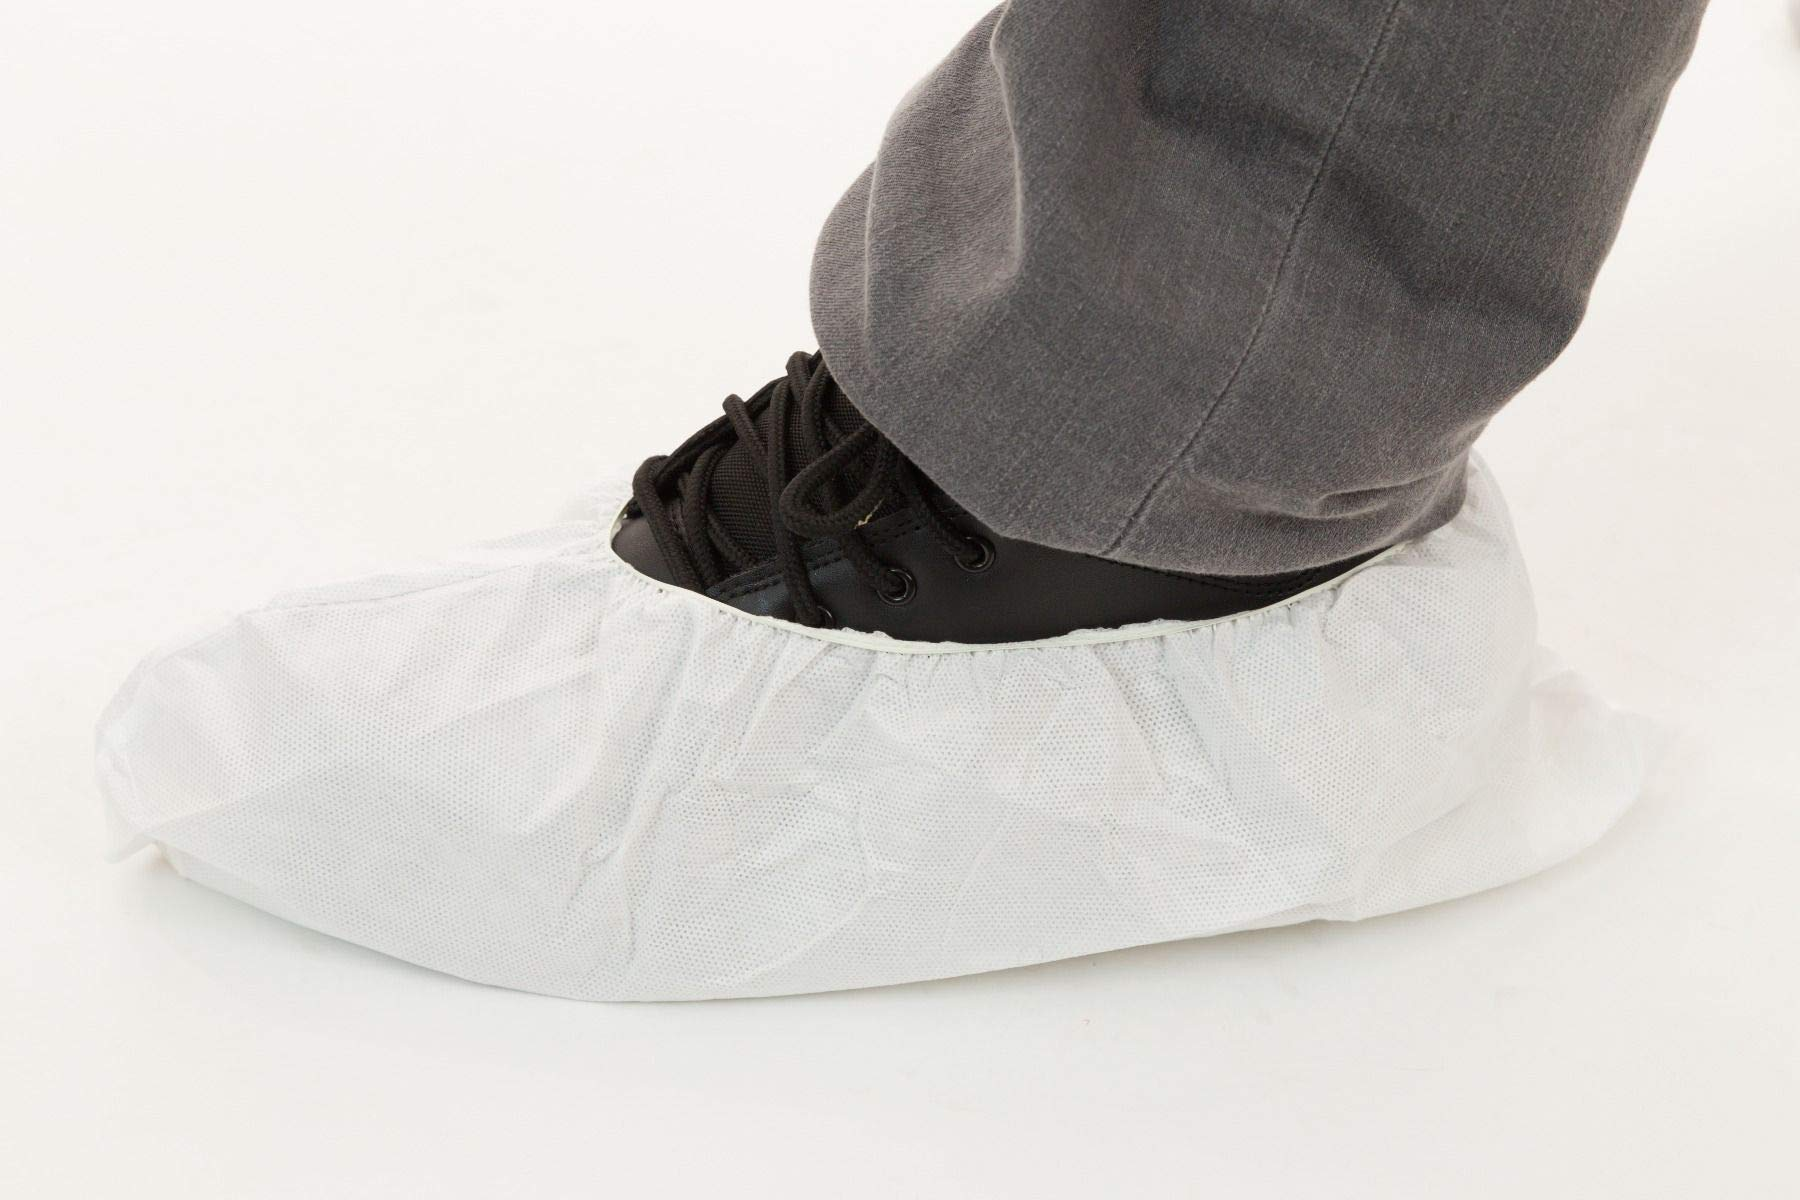 Body Filter 95+ Disposable Shoe Covers (White) | Breathable Cool Material - Protective Body Suit for Dust, Spray Paint, Insulation, and More (Case of 200) by BODY FILTER 95+ (Image #2)